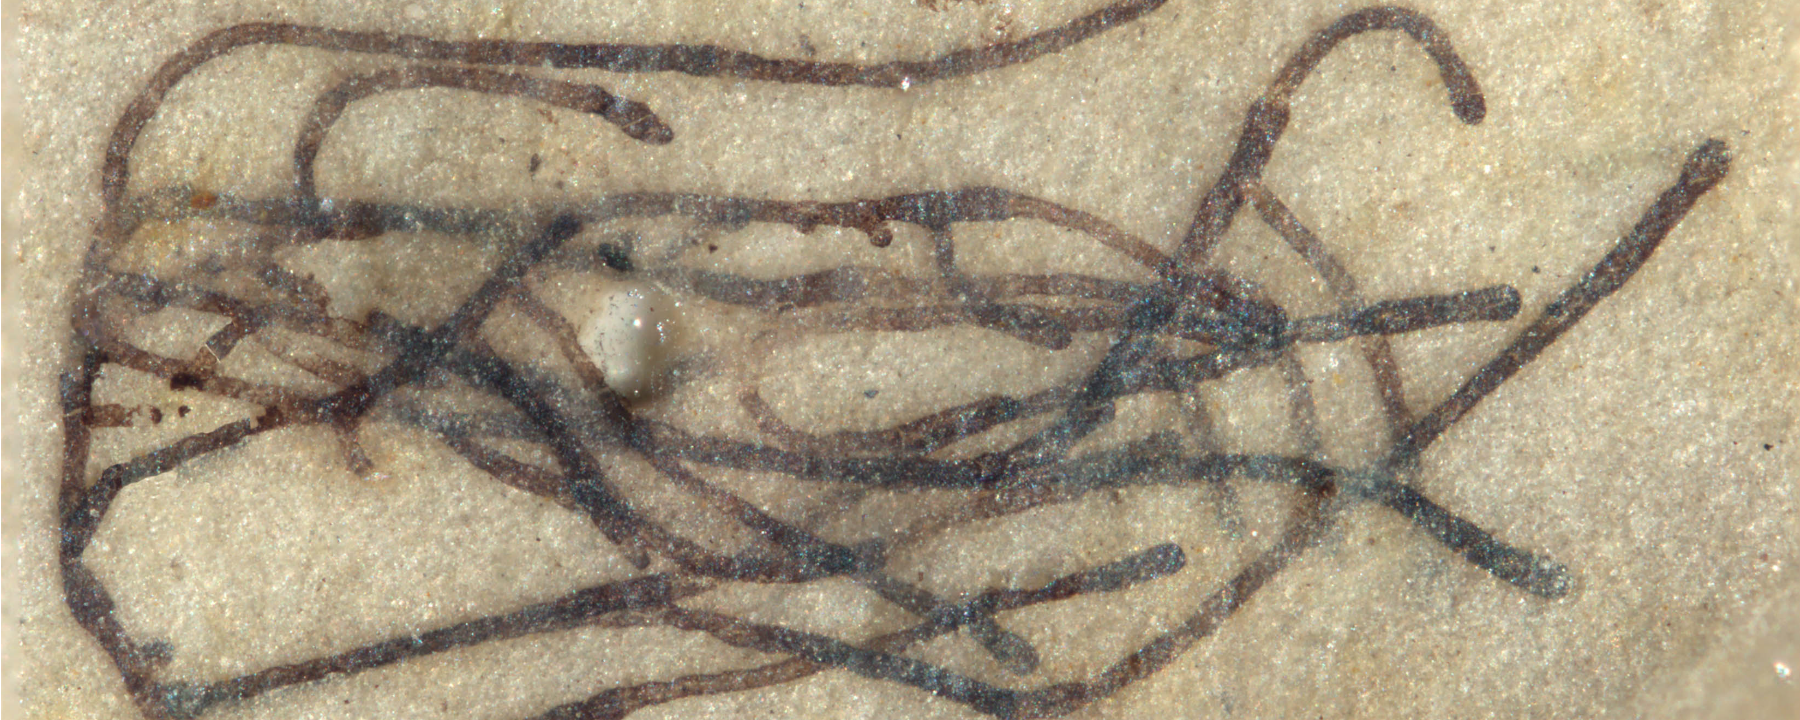 Oldest Green Algae Fossil Discovered in China